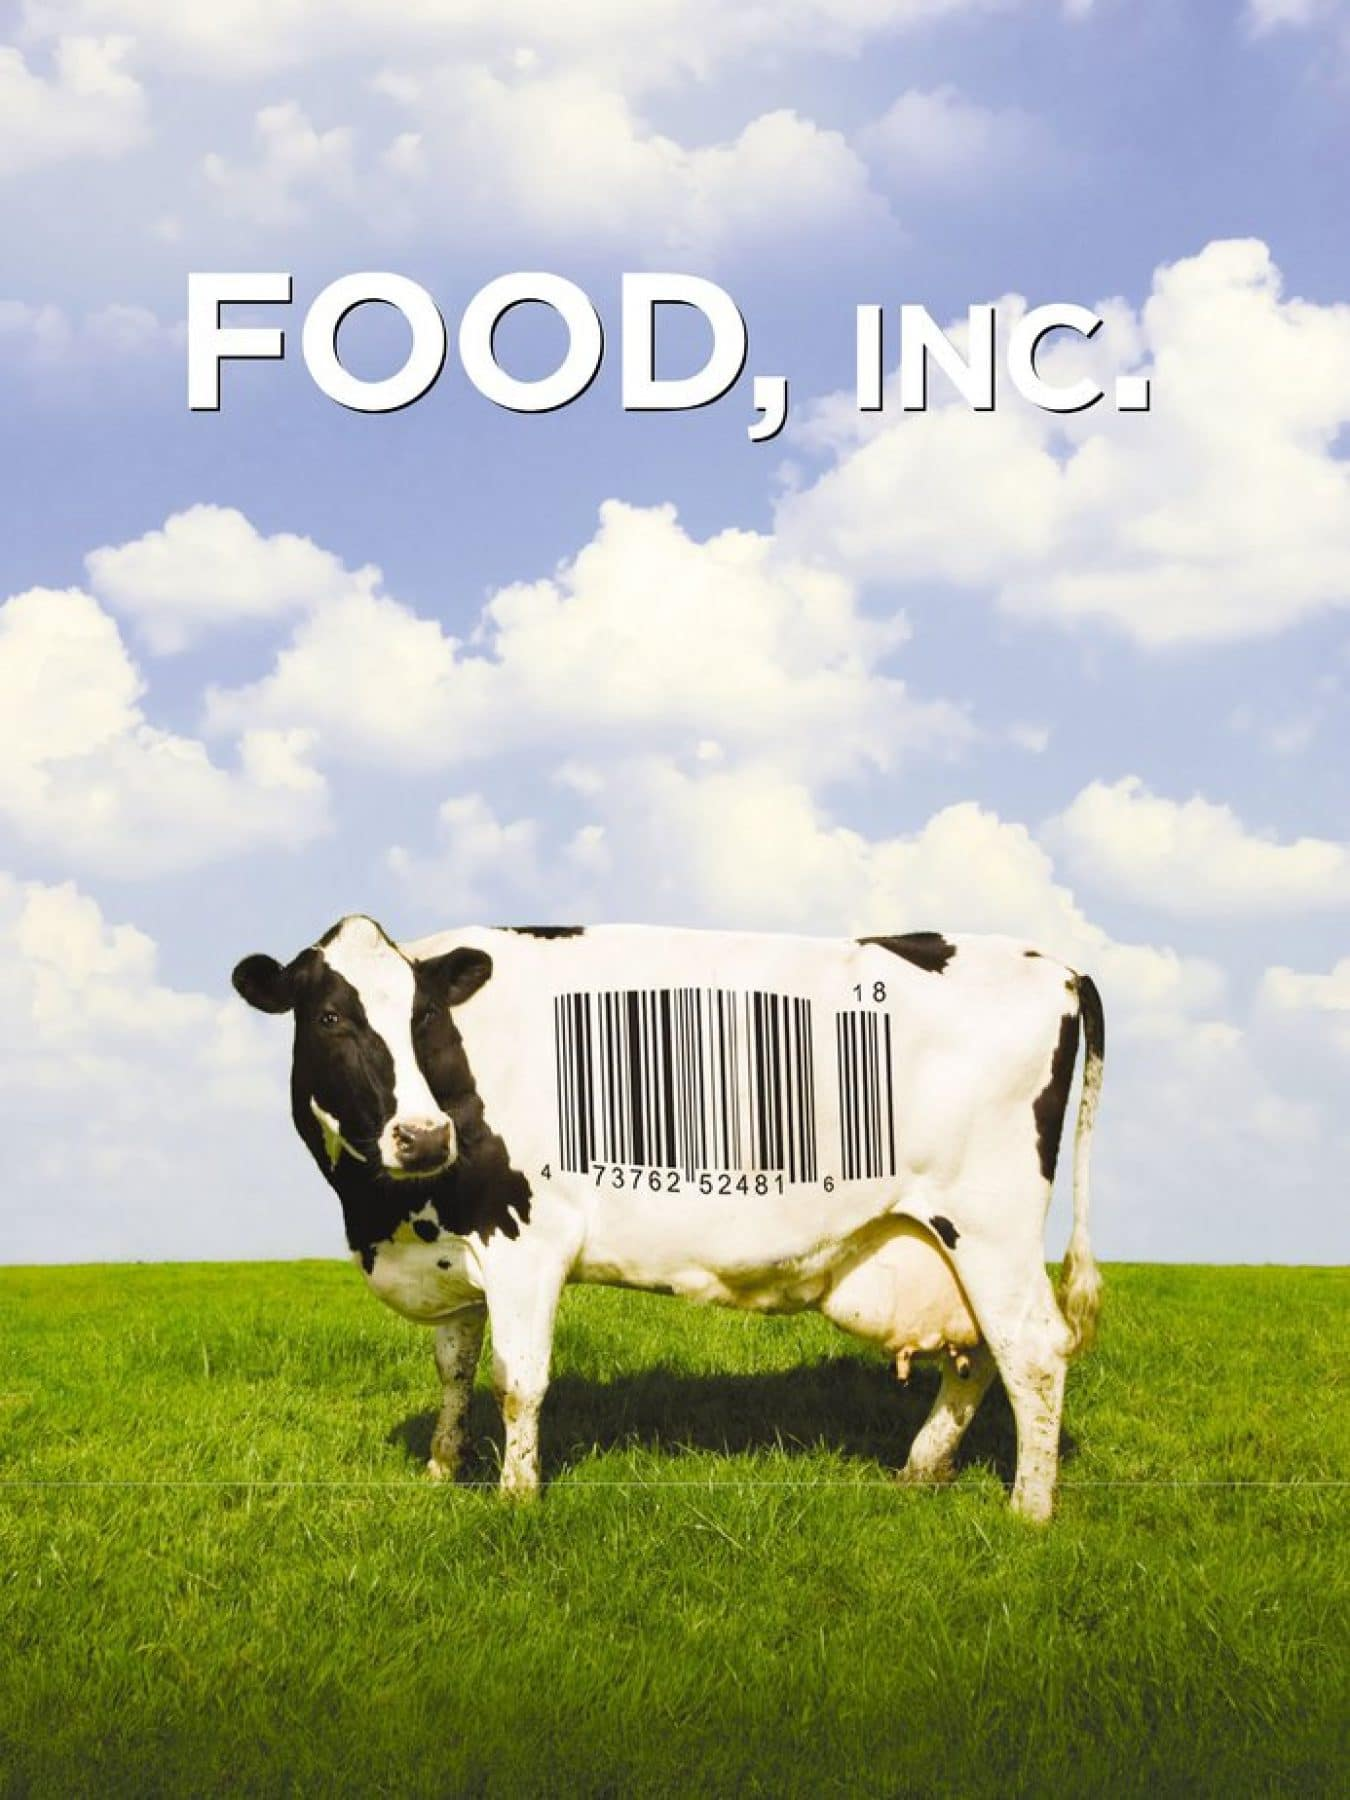 Documentaire food inc - Gaspillage alimentaire